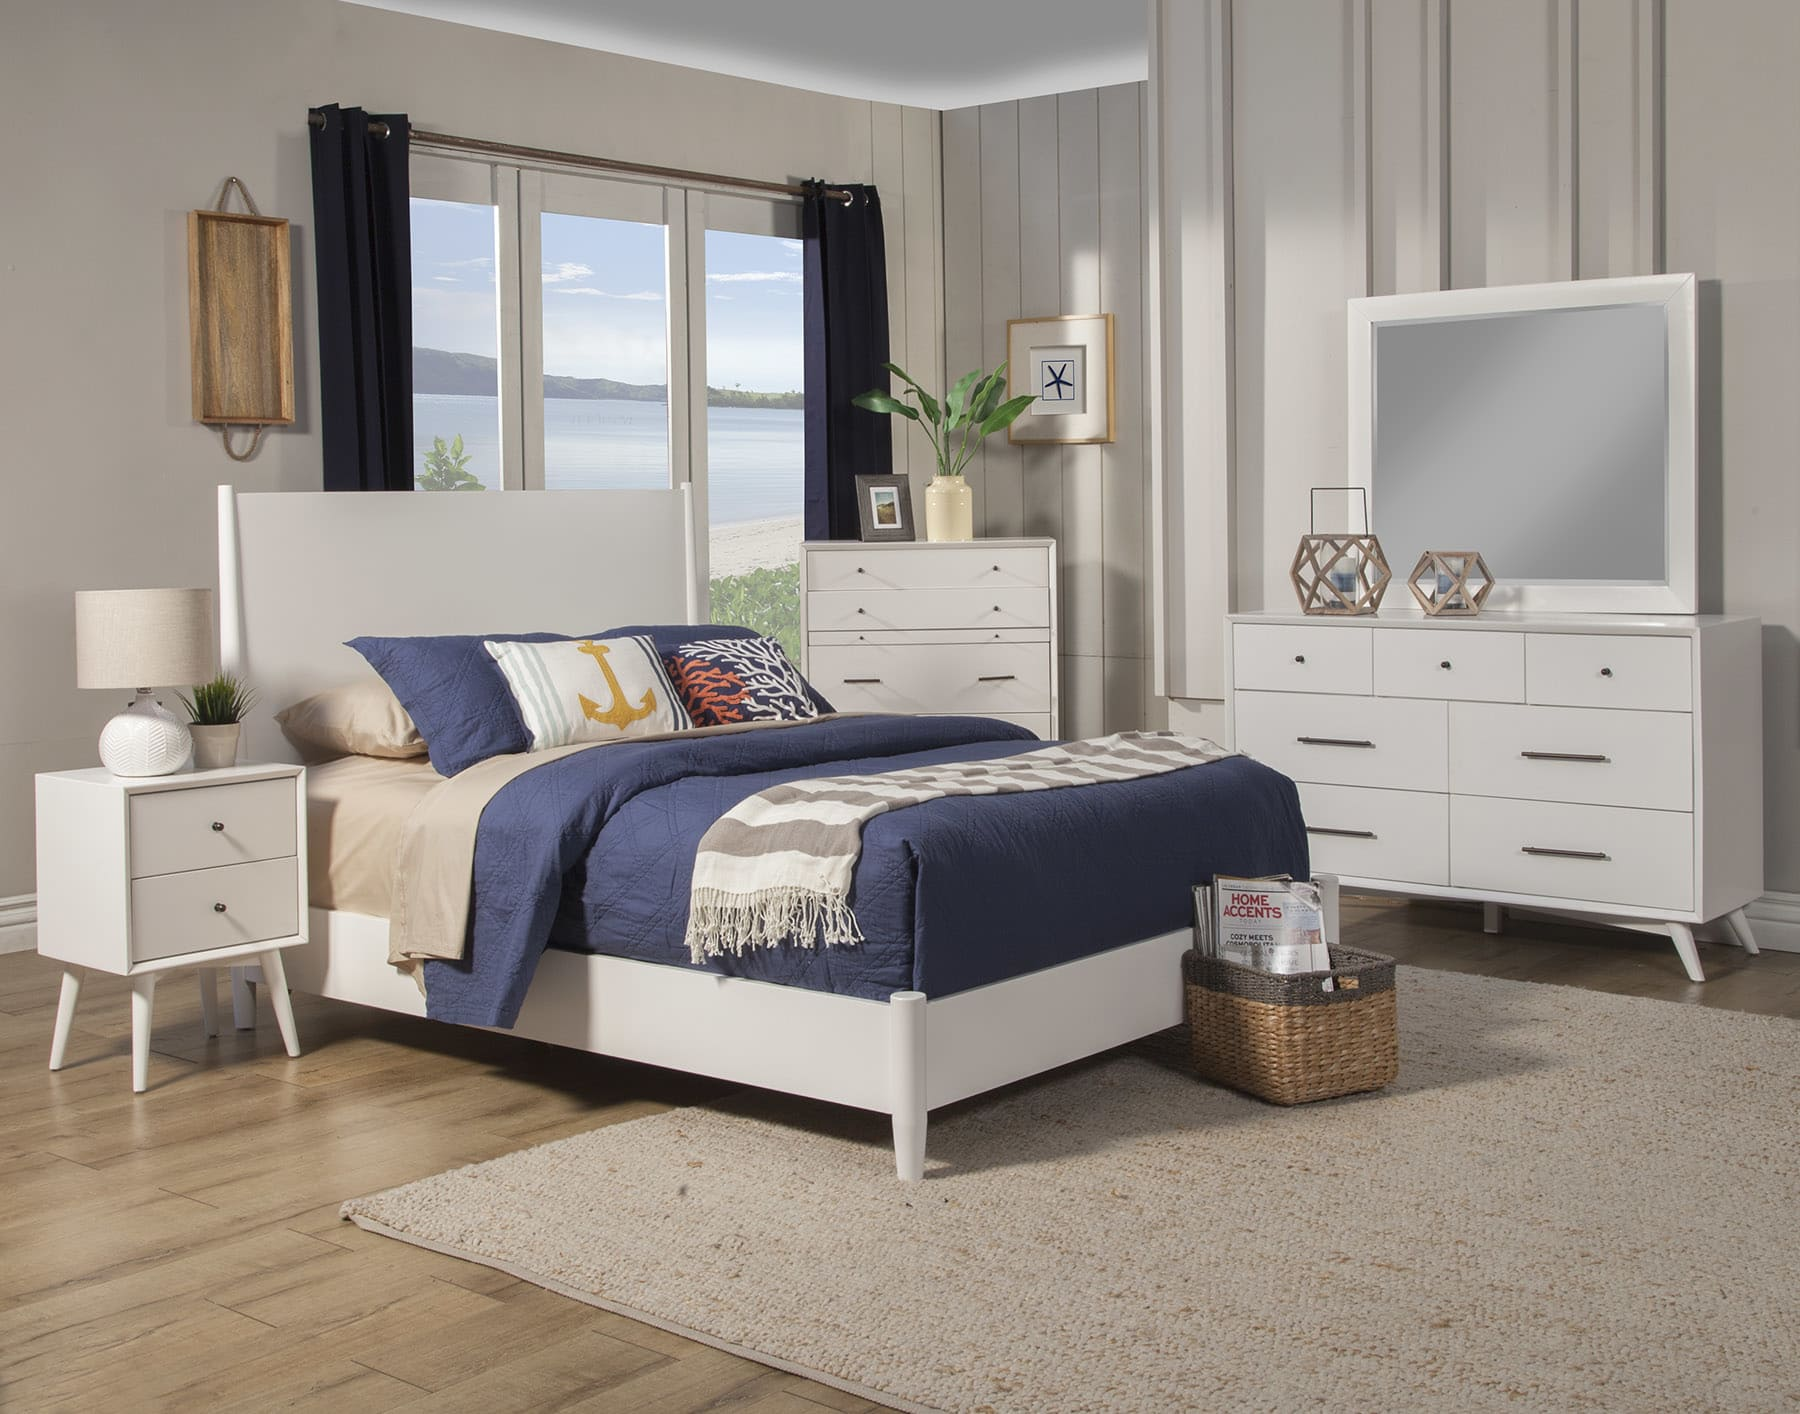 Astonishing Alpine Flynn White Mid Century Modern King 5 Piece Bedroom Set Reviews Goedekers Com Inzonedesignstudio Interior Chair Design Inzonedesignstudiocom